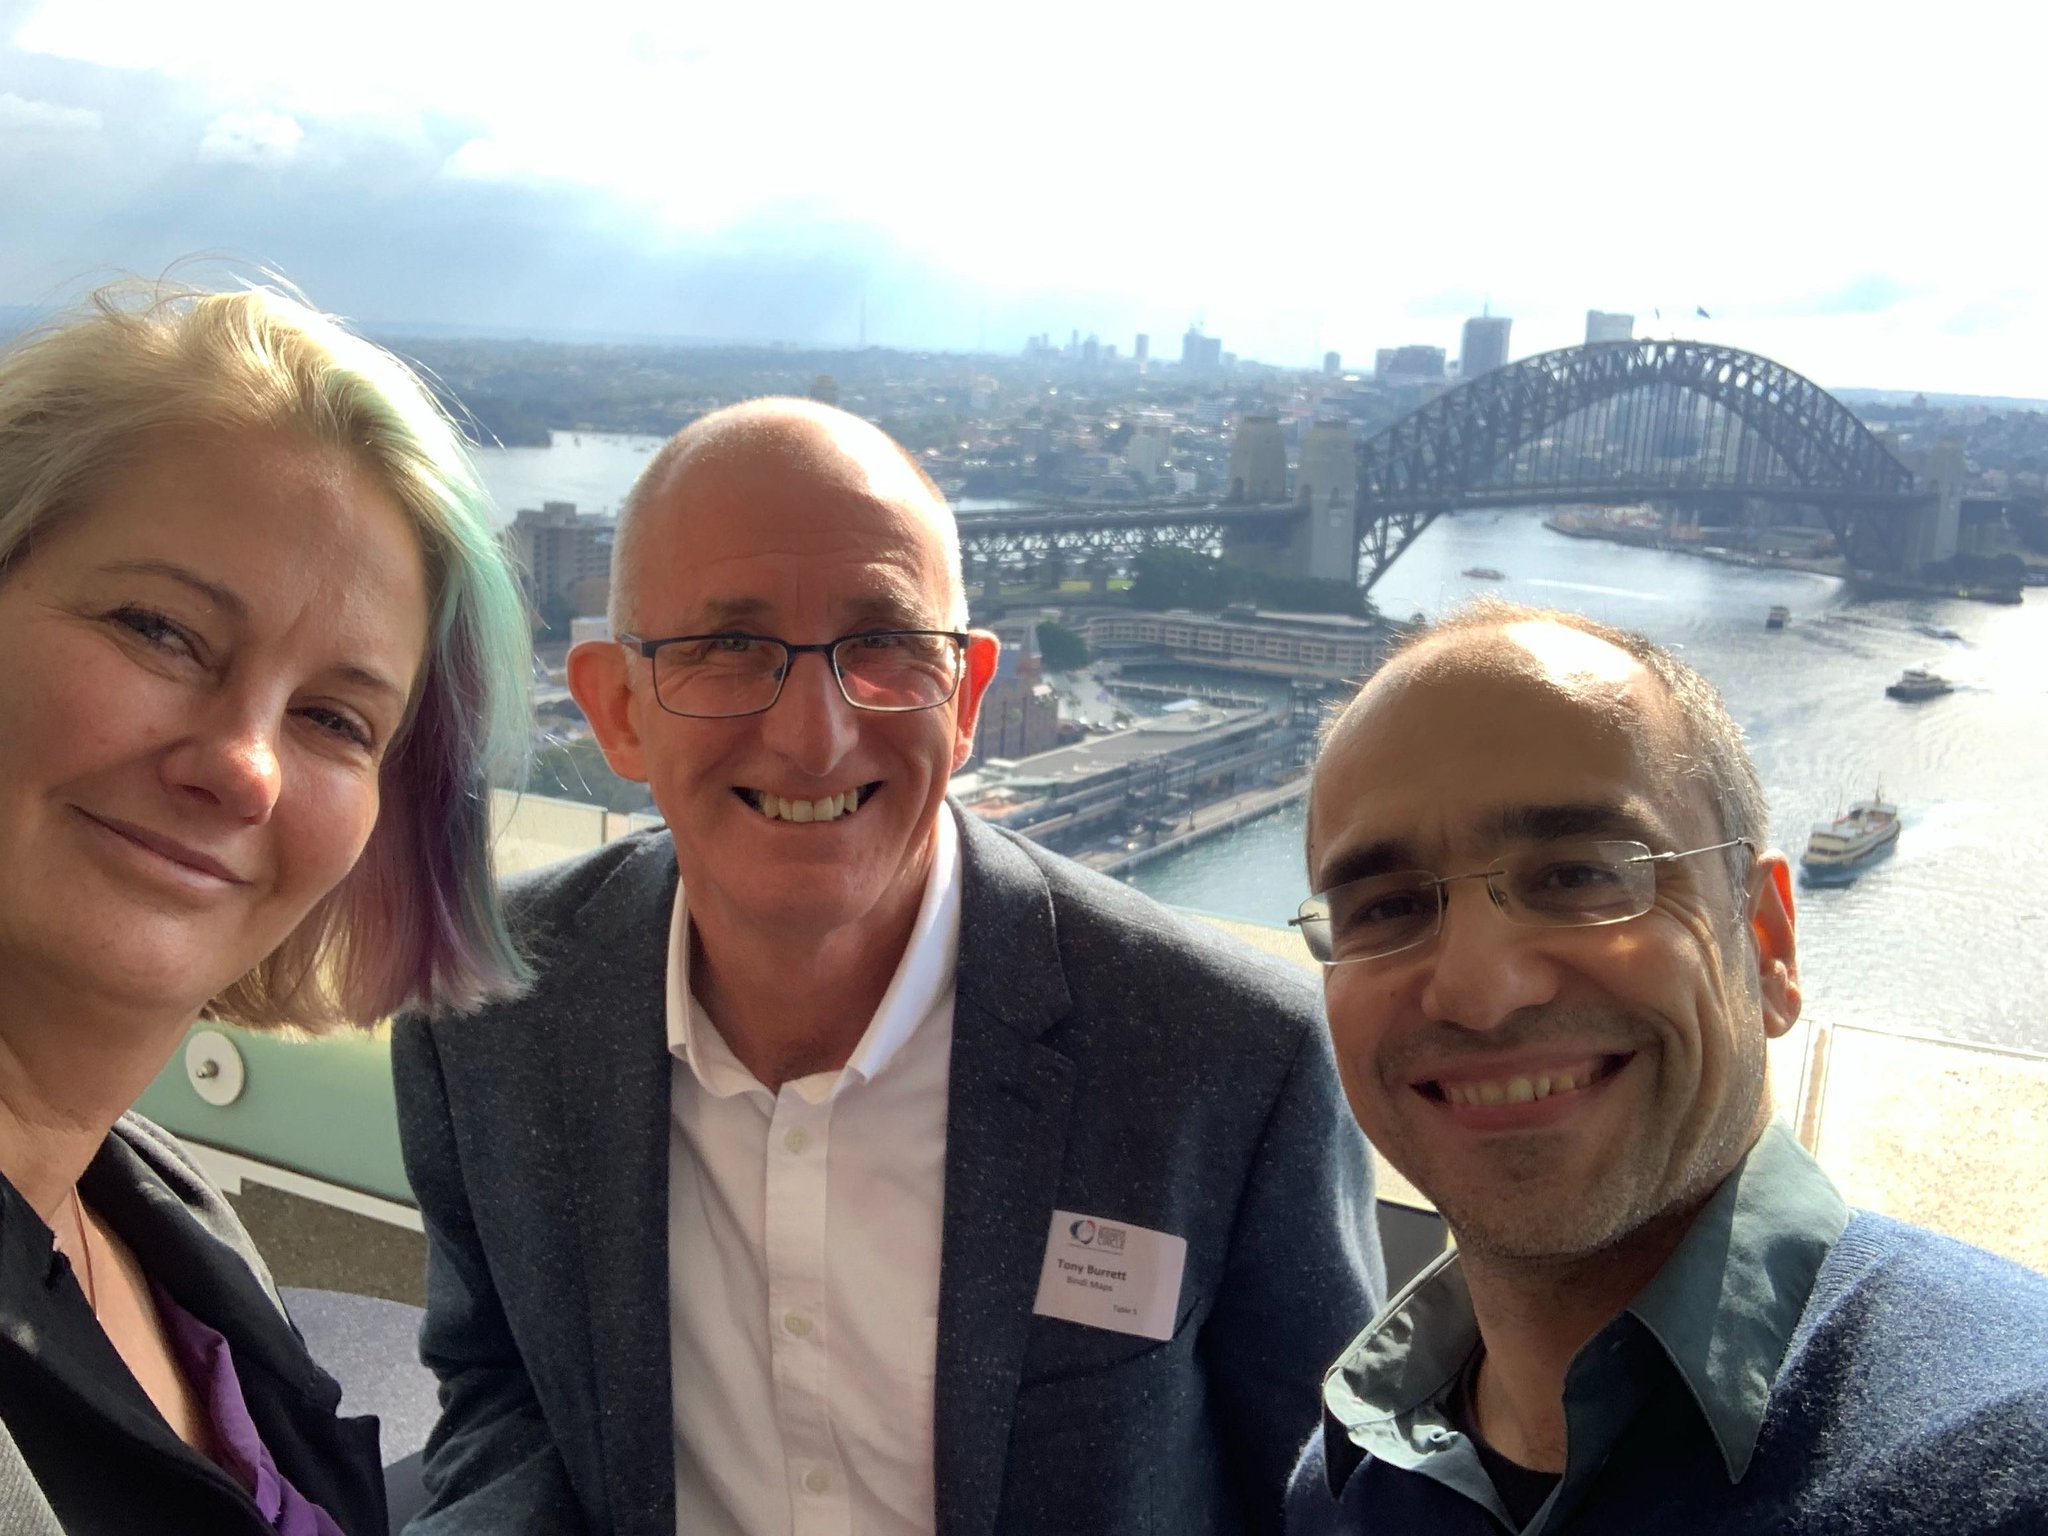 Anna, Tony and Thanassis at the AMP Building in Sydney, showcasing BindiMaps.